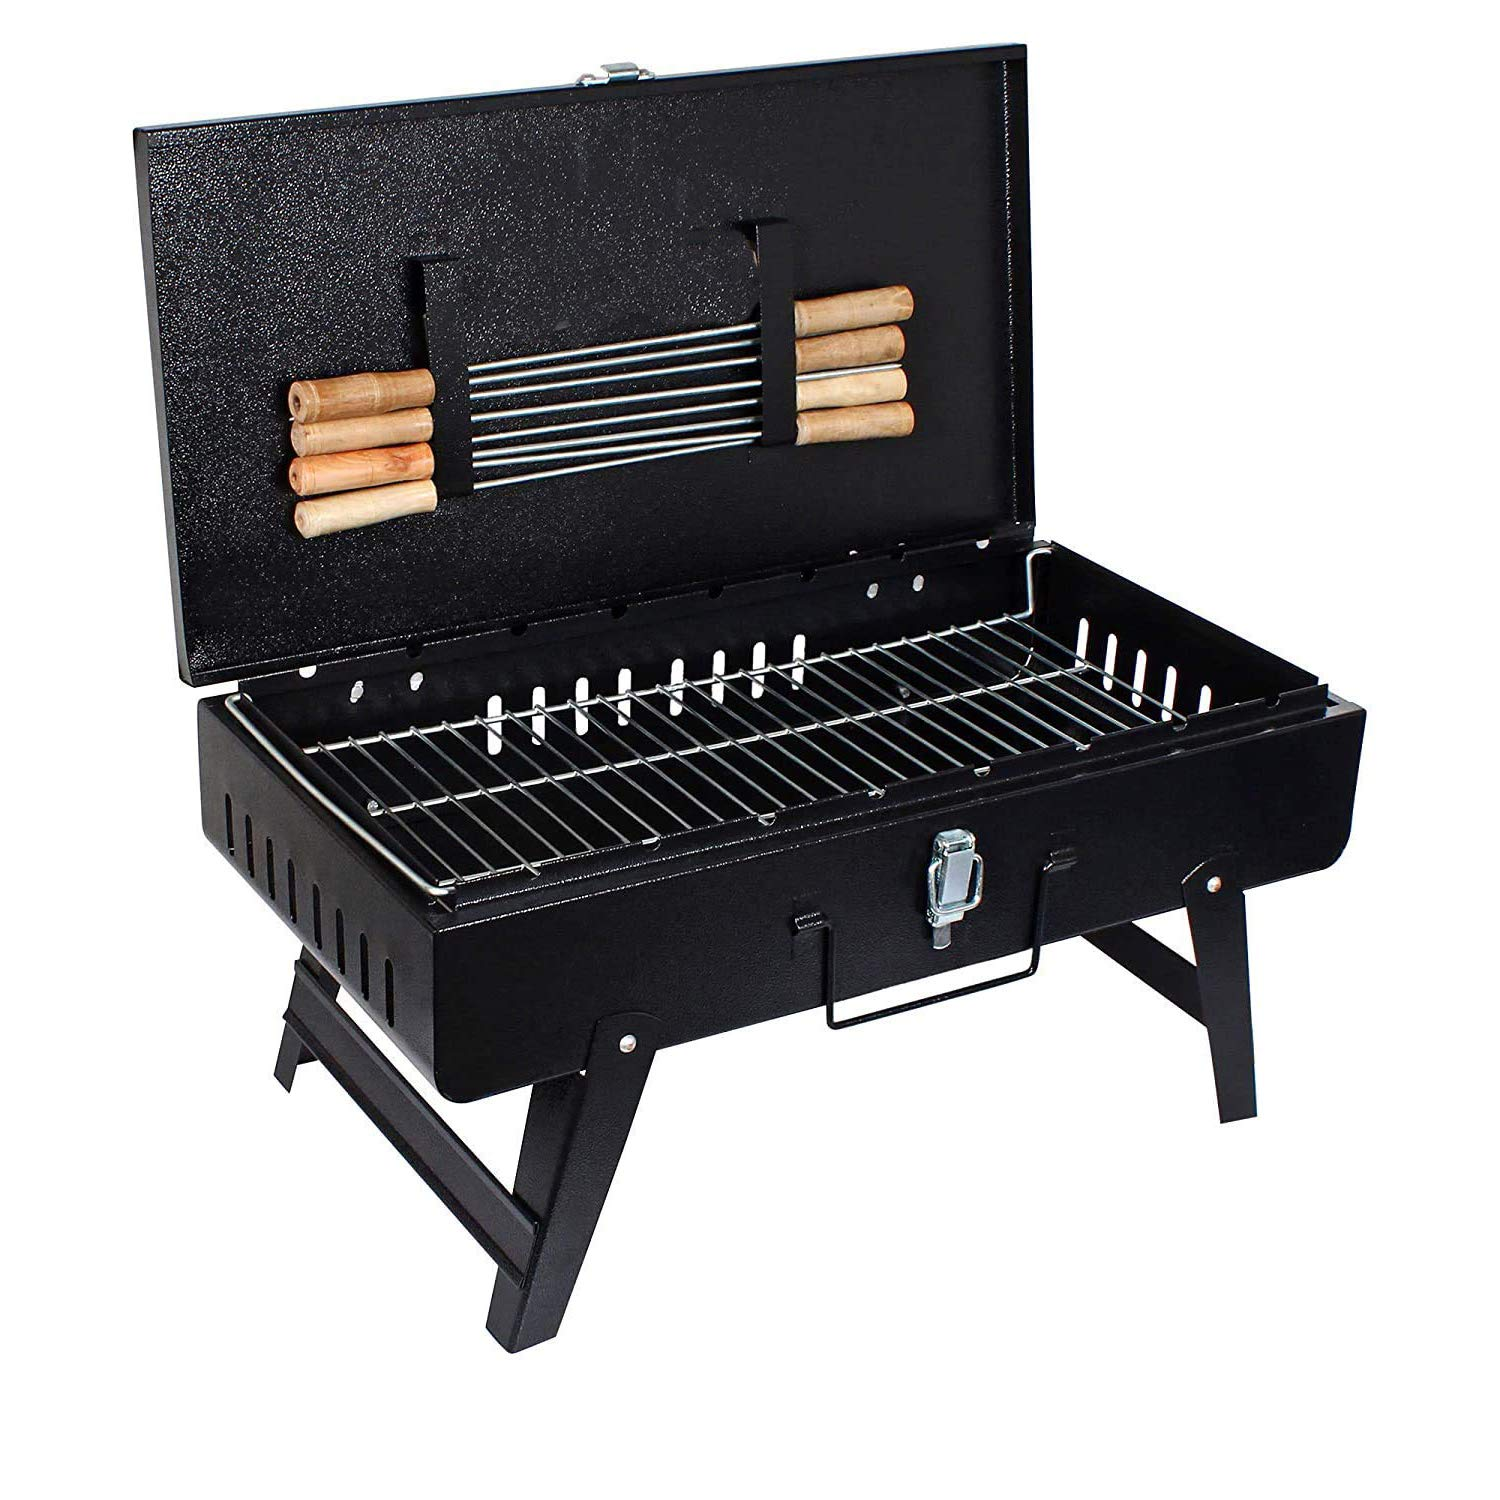 Hygiene Future Home Suitcase Charcoal Barbeque Grill